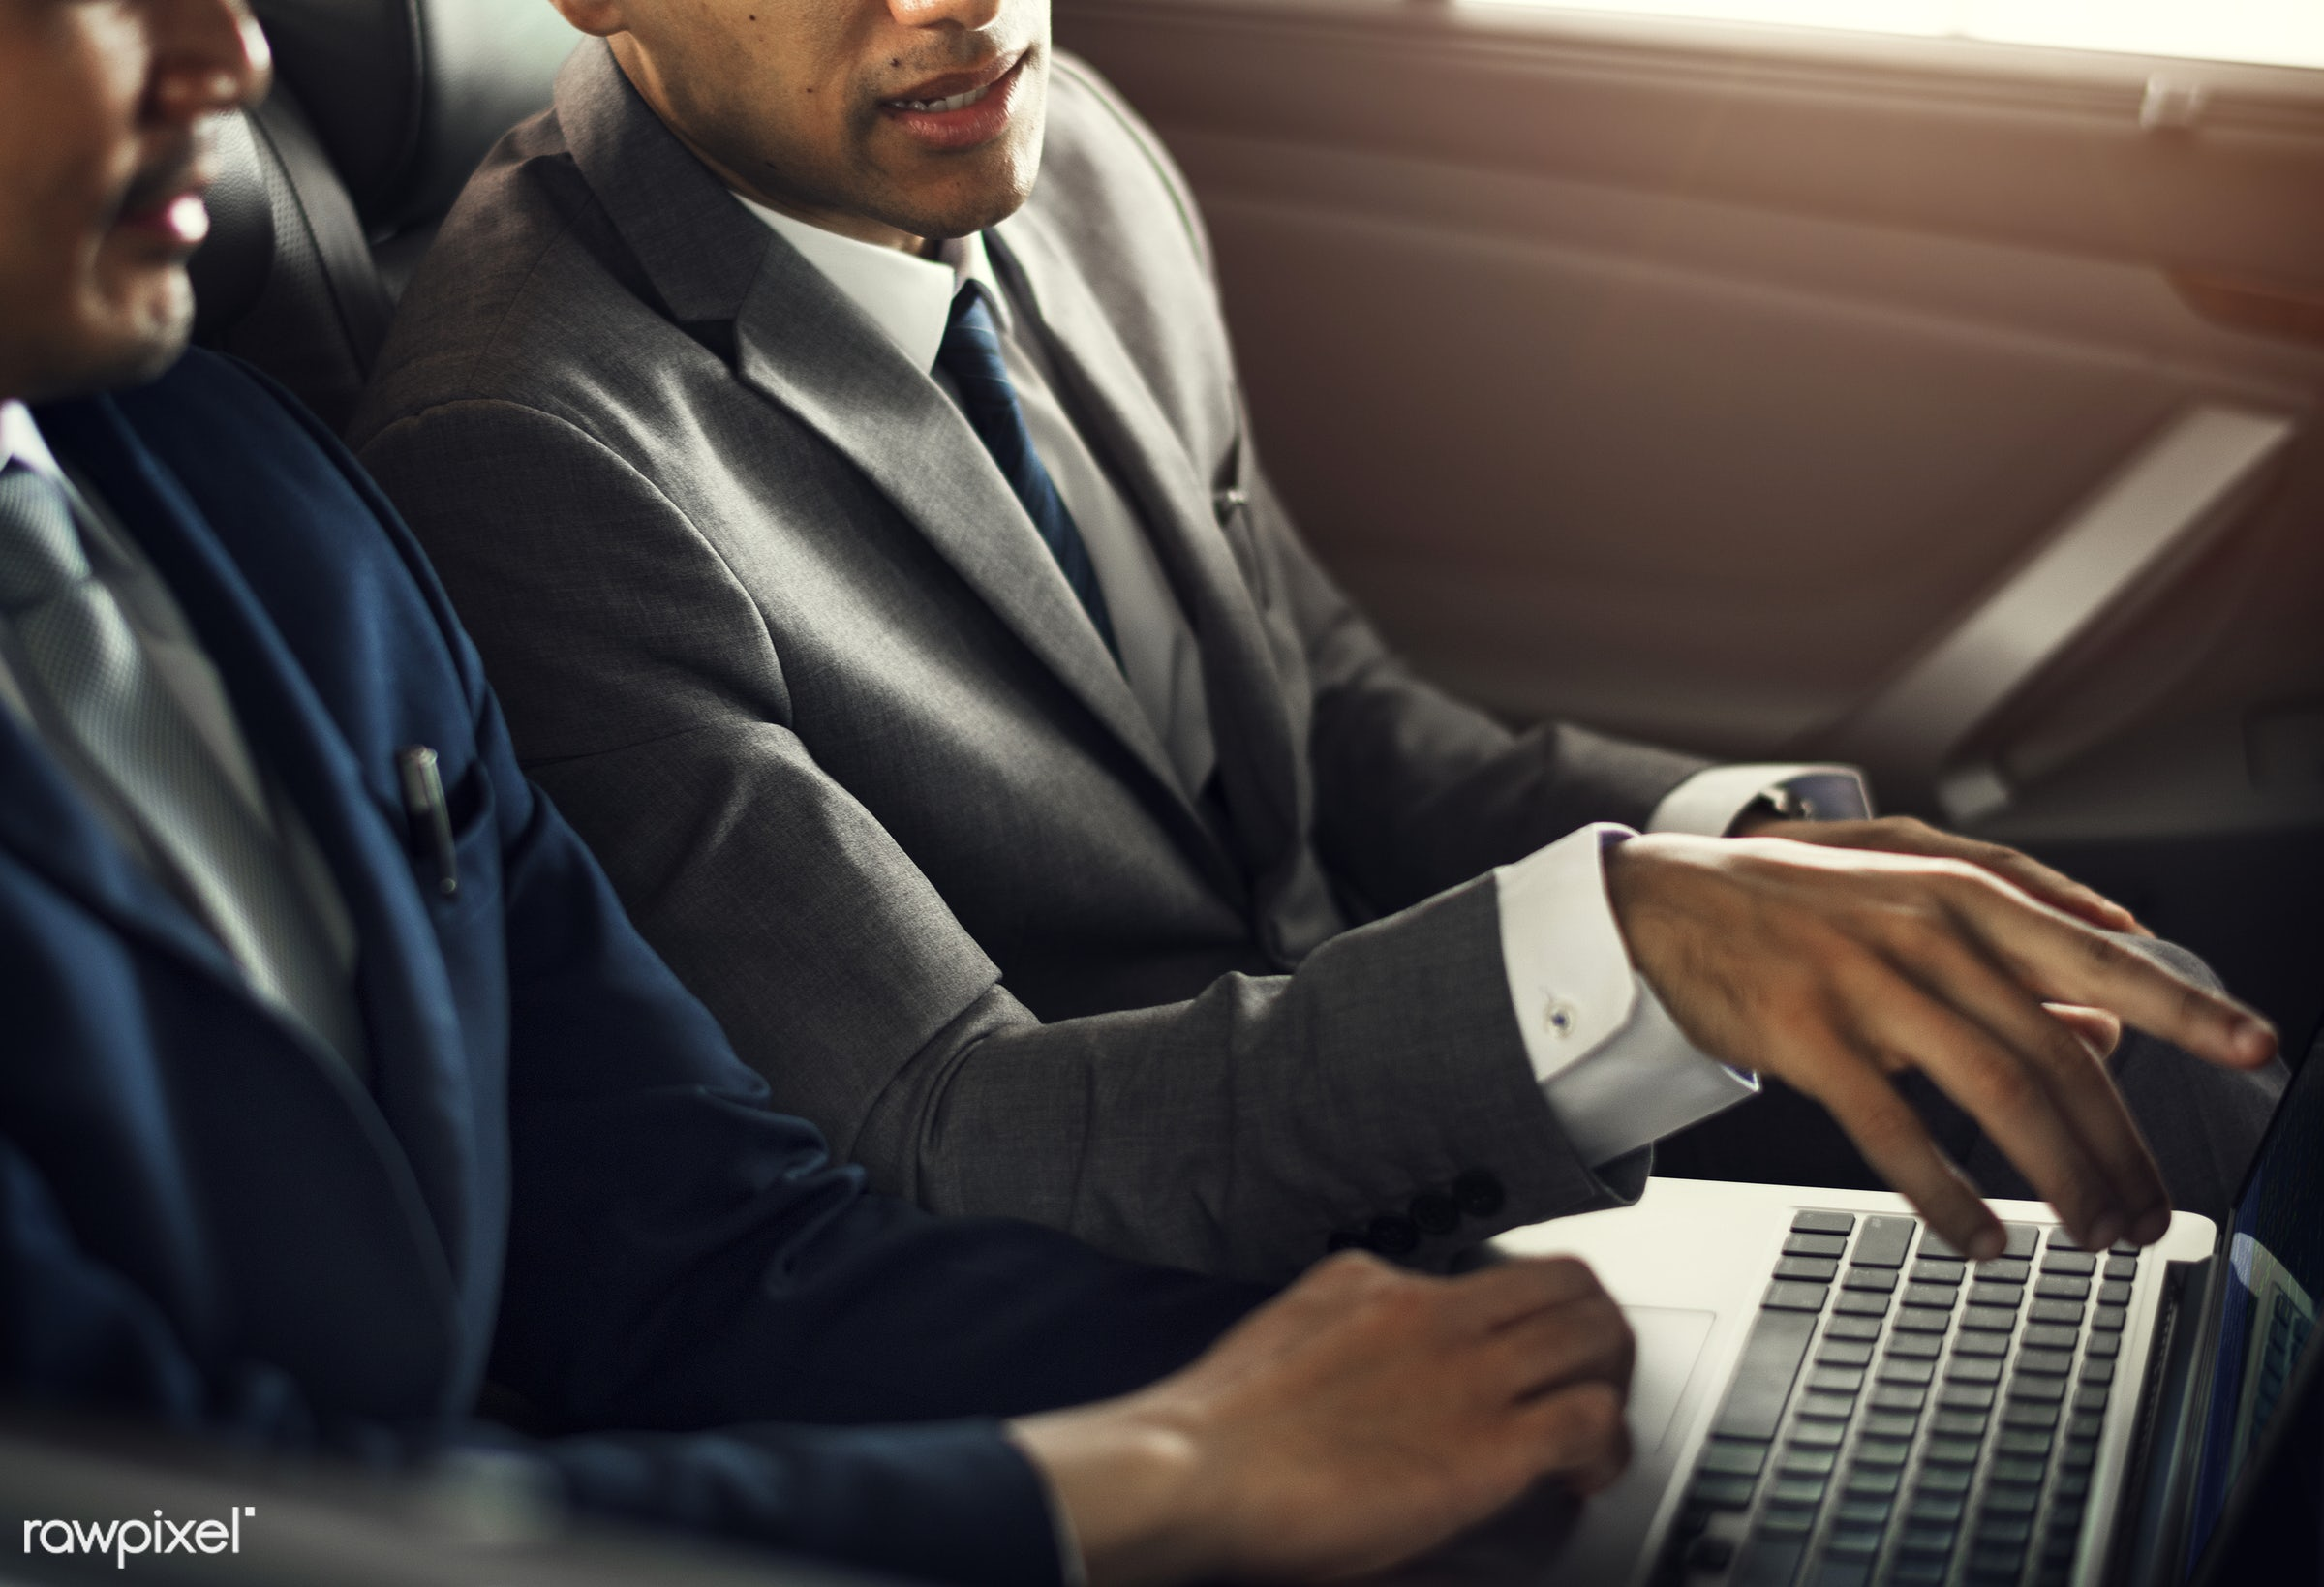 Business Men Use Laptop Car - summary, person, technology, show, transportation, people, friends, seat, white collar workers...